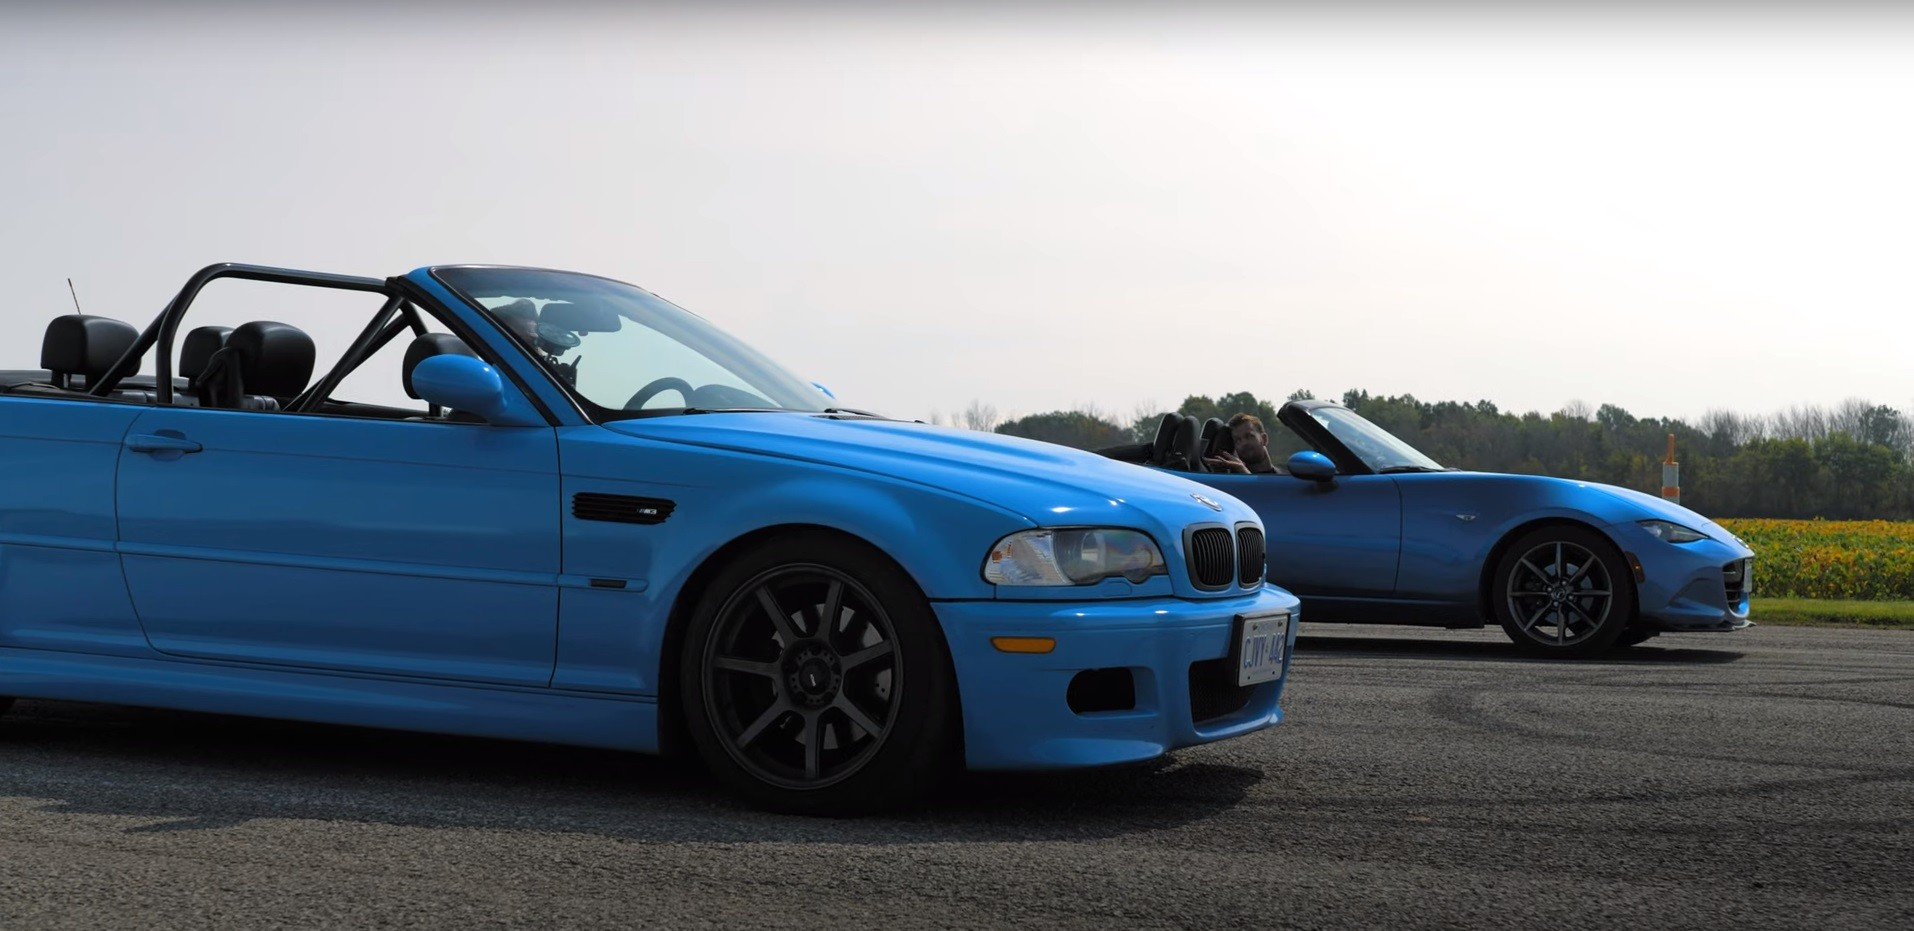 2001 Bmw E46 M3 Vs 2016 Mazda Mx 5 Drag Race Is Just A Bit Of Fun With Cars Autoevolution